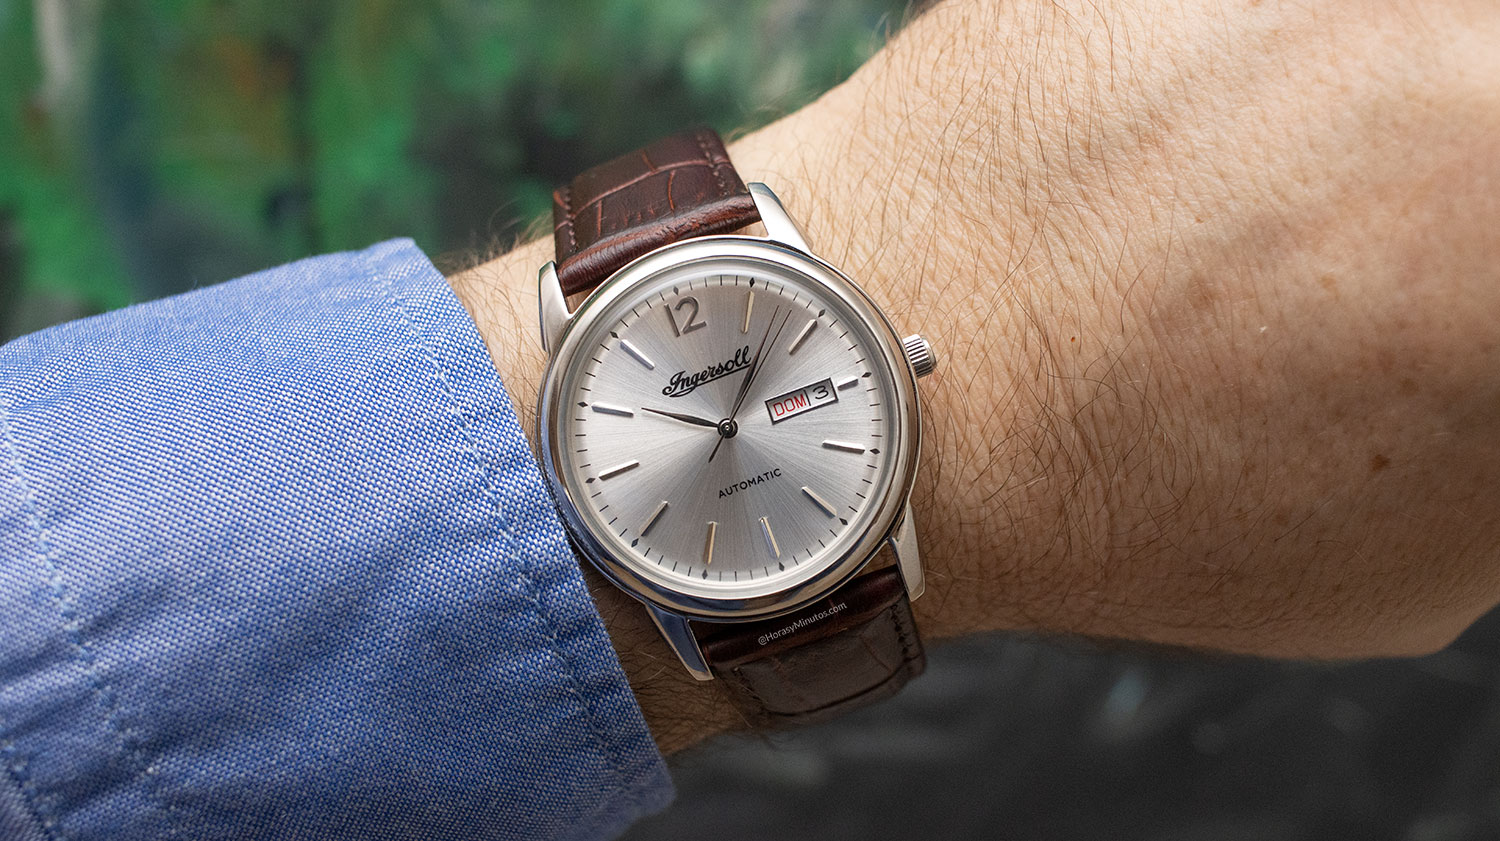 El Ingersoll New Haven Automatic, en la muñeca